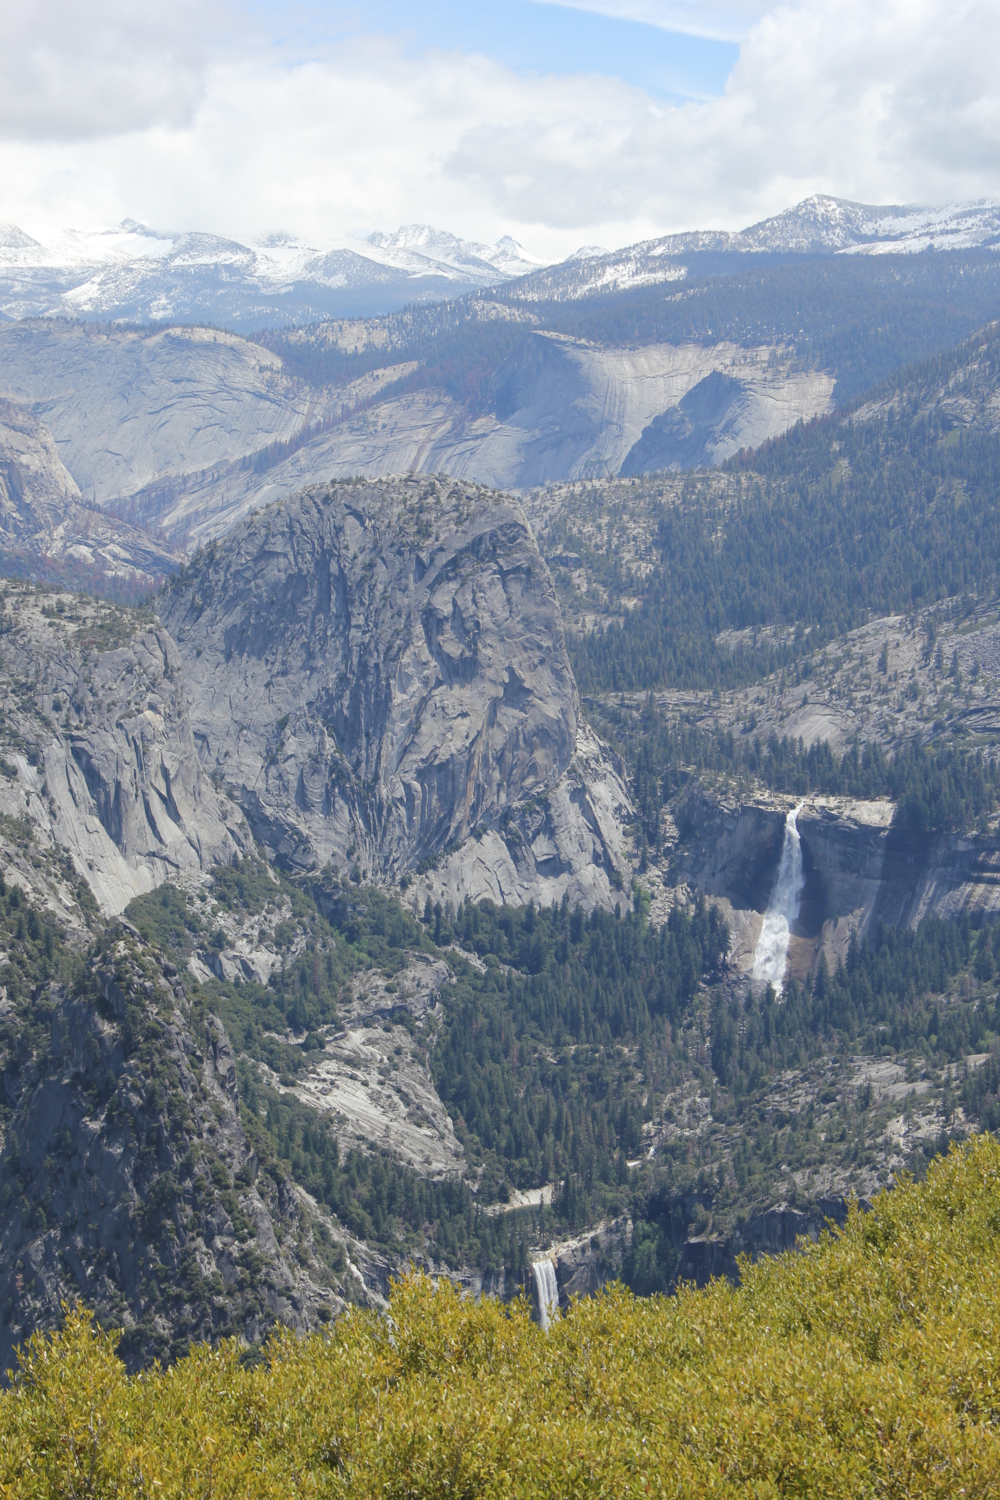 View of Vernal Falls and Nevada Falls from Glacier Point